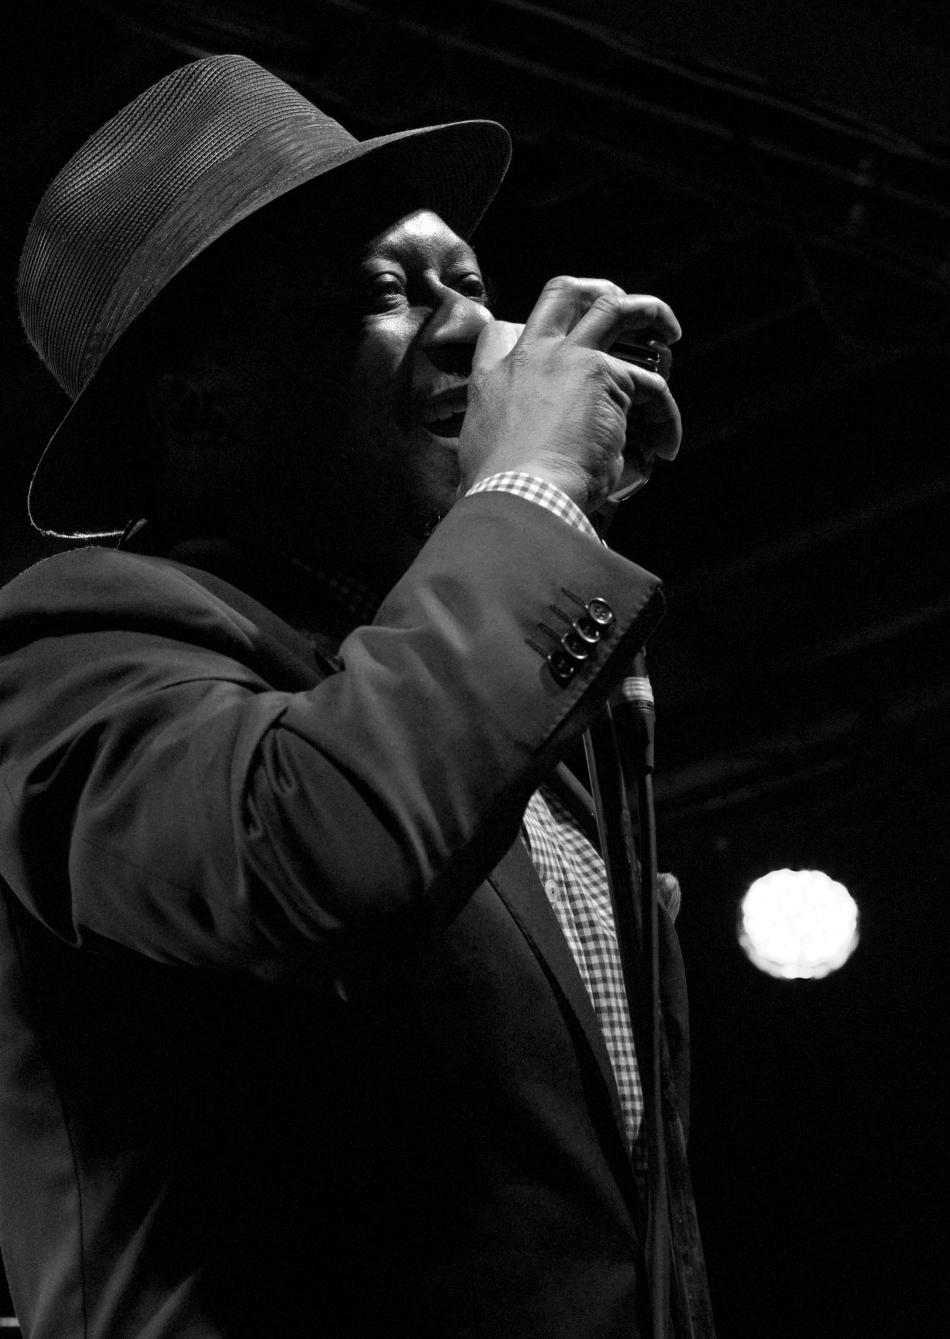 Jazz trumpeter and vocalist Kermit Ruffins performing at Tipitina's in New Orleans, LA on June 8, 2013